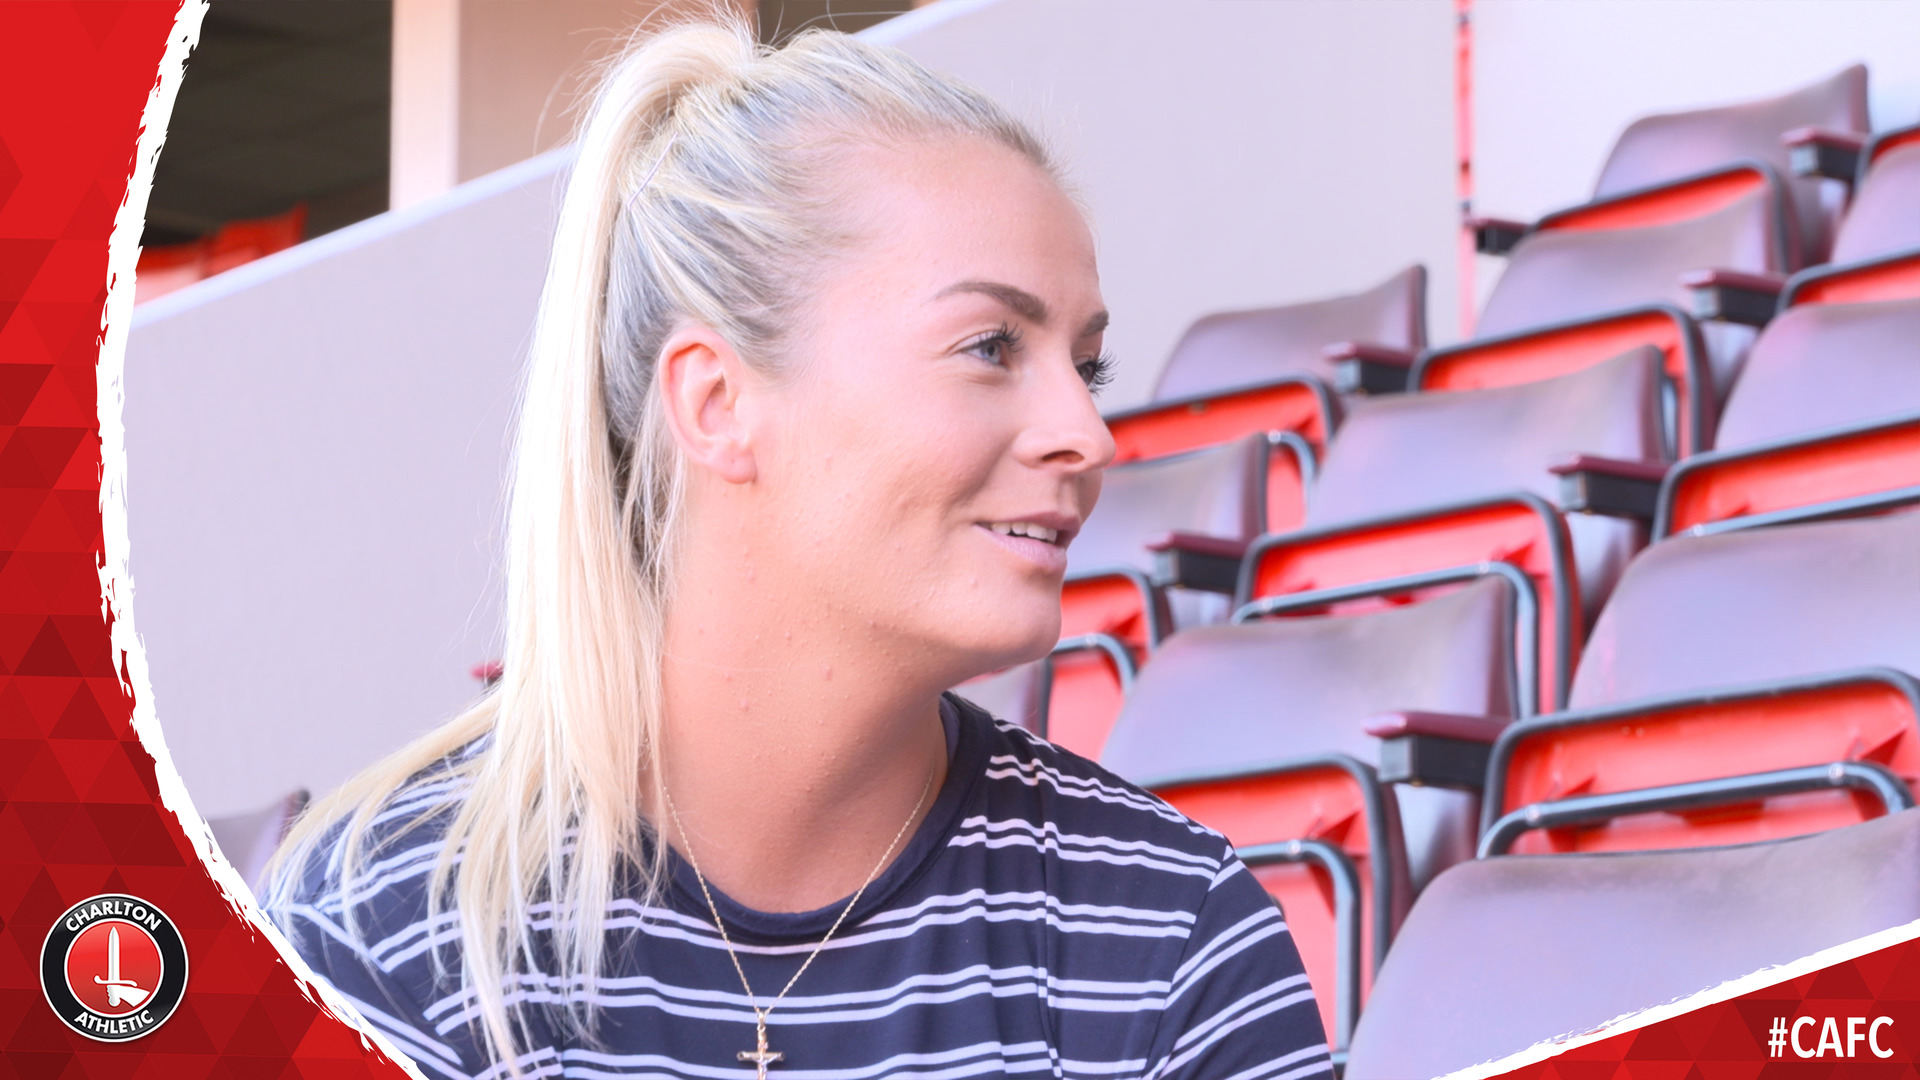 Lily Agg signs for the Charlton women